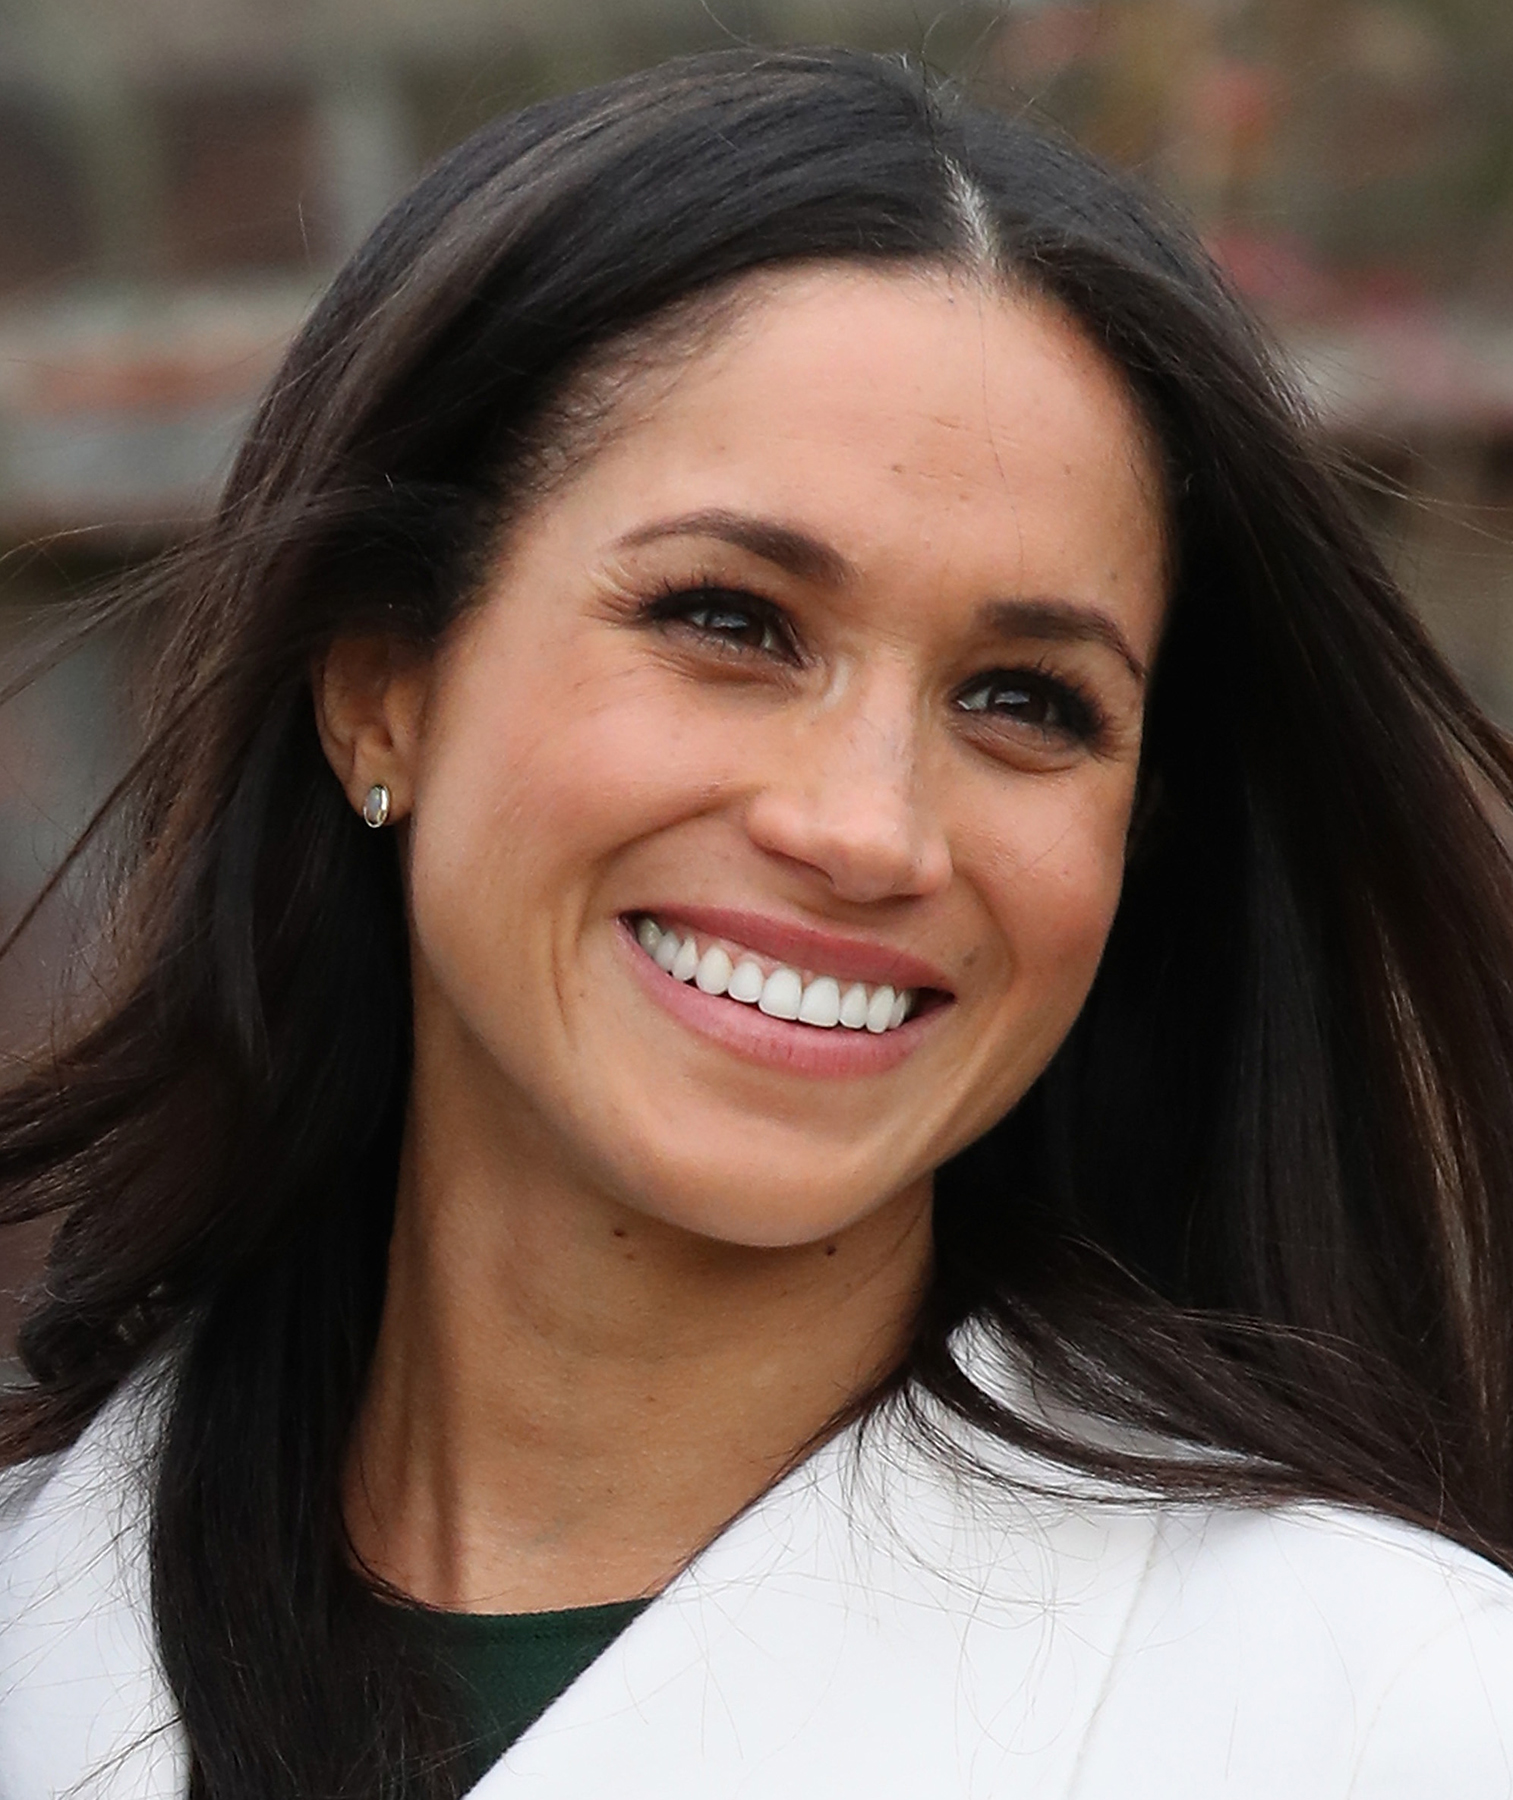 Meghan Markle at engagement announcement